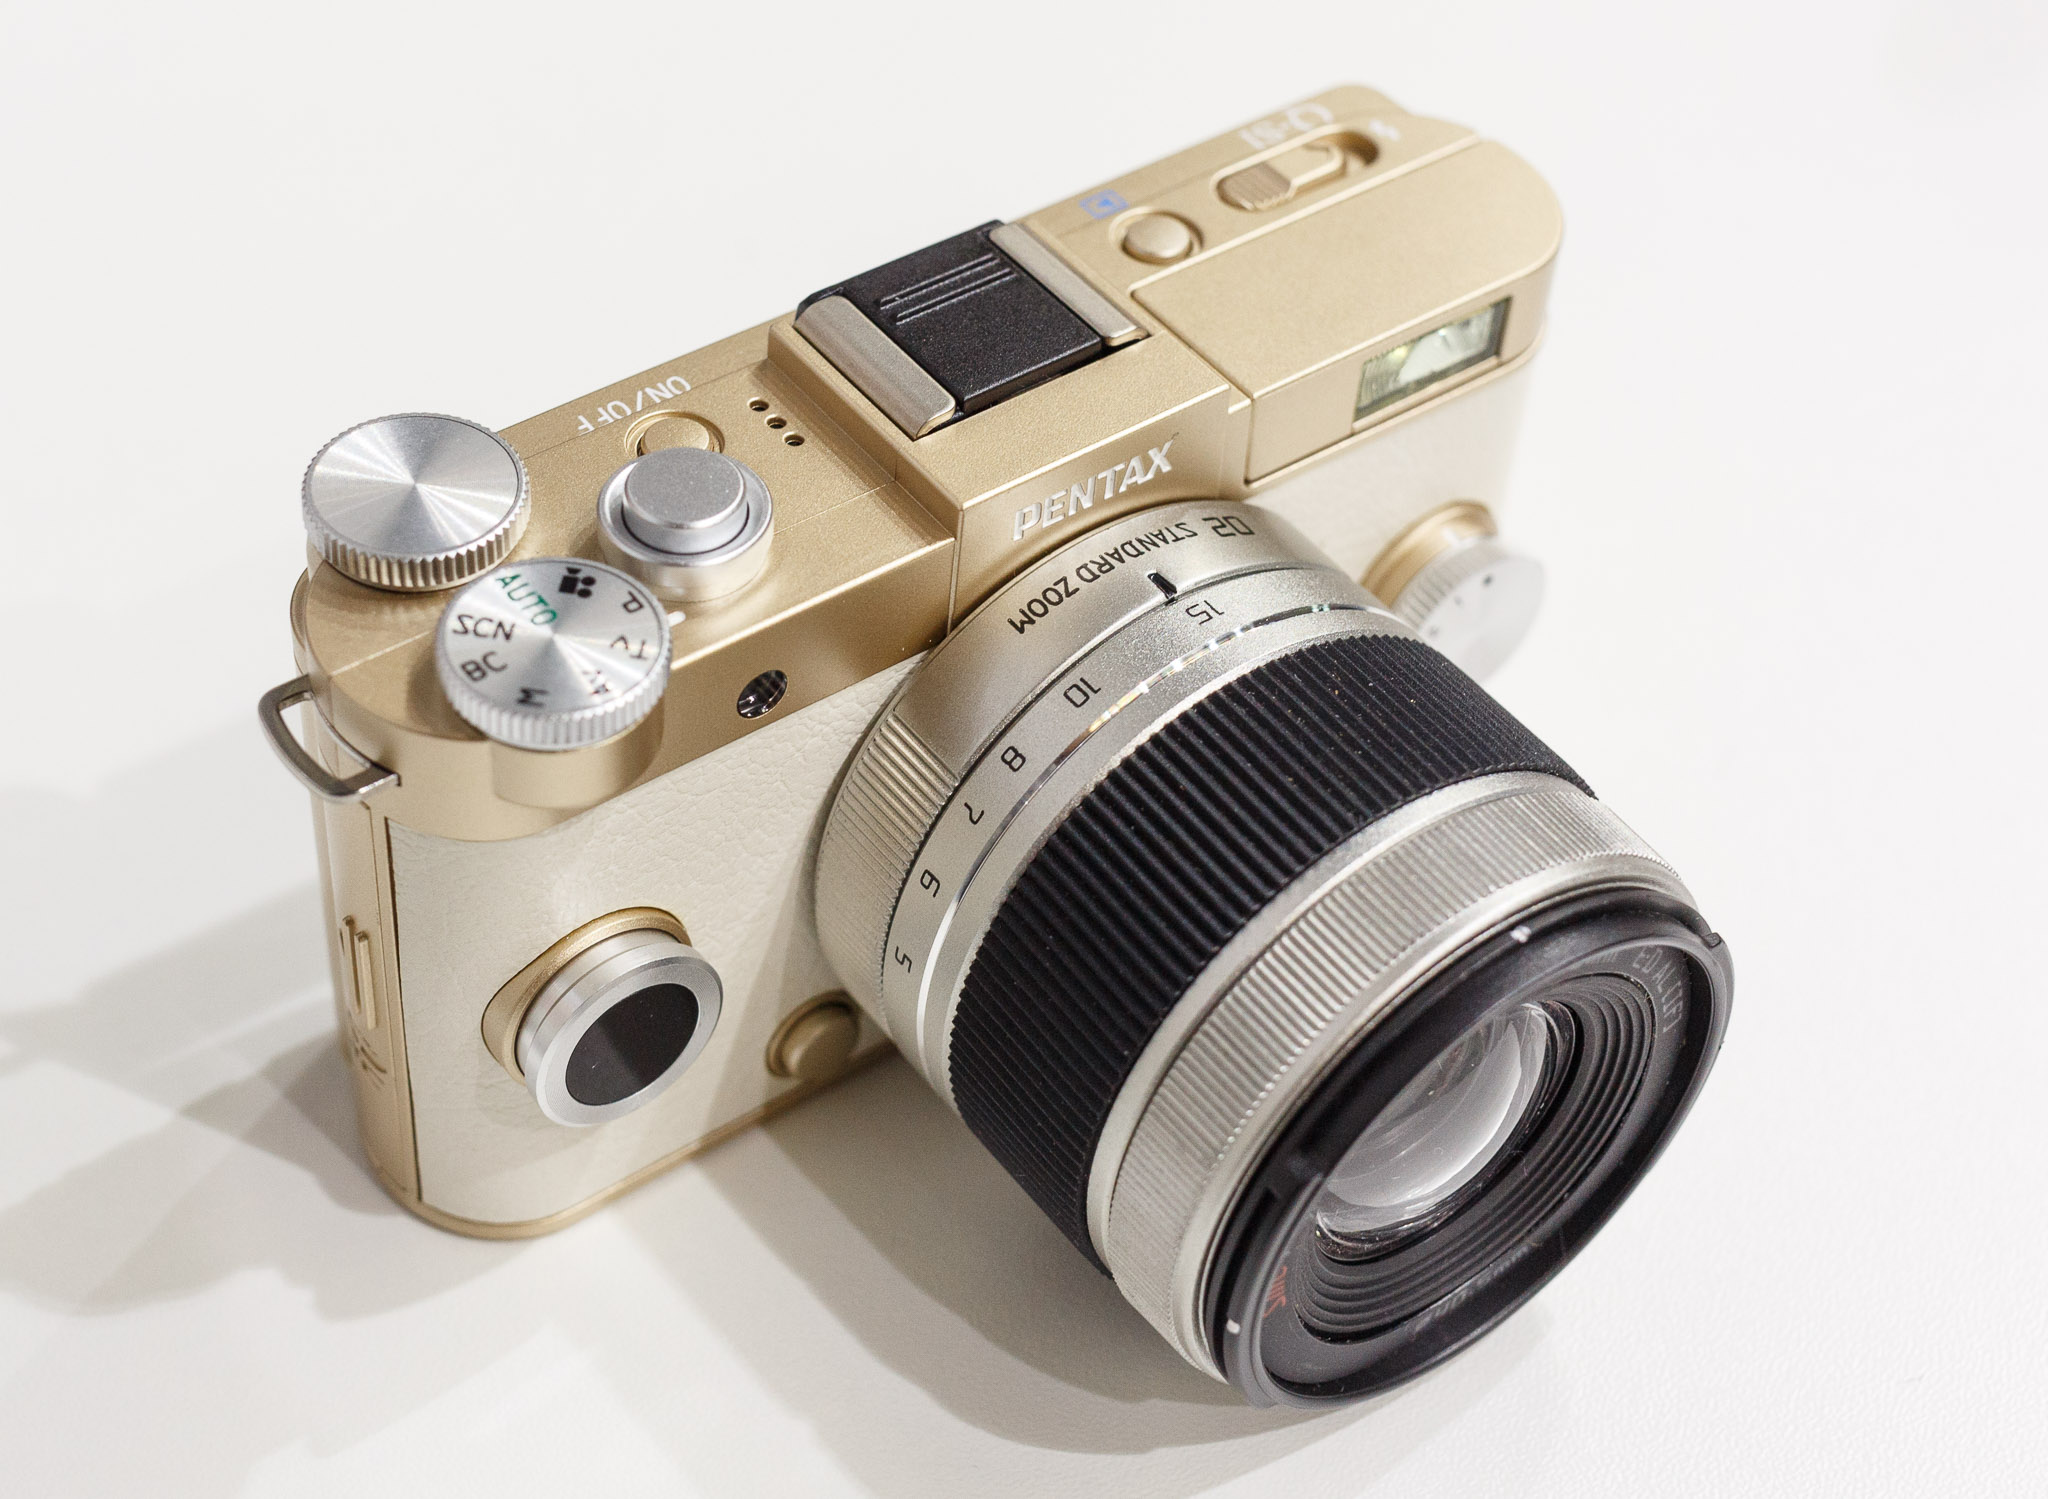 Pentax Q-S1 is very small camera but features a choice of eight interchangeable lenses.